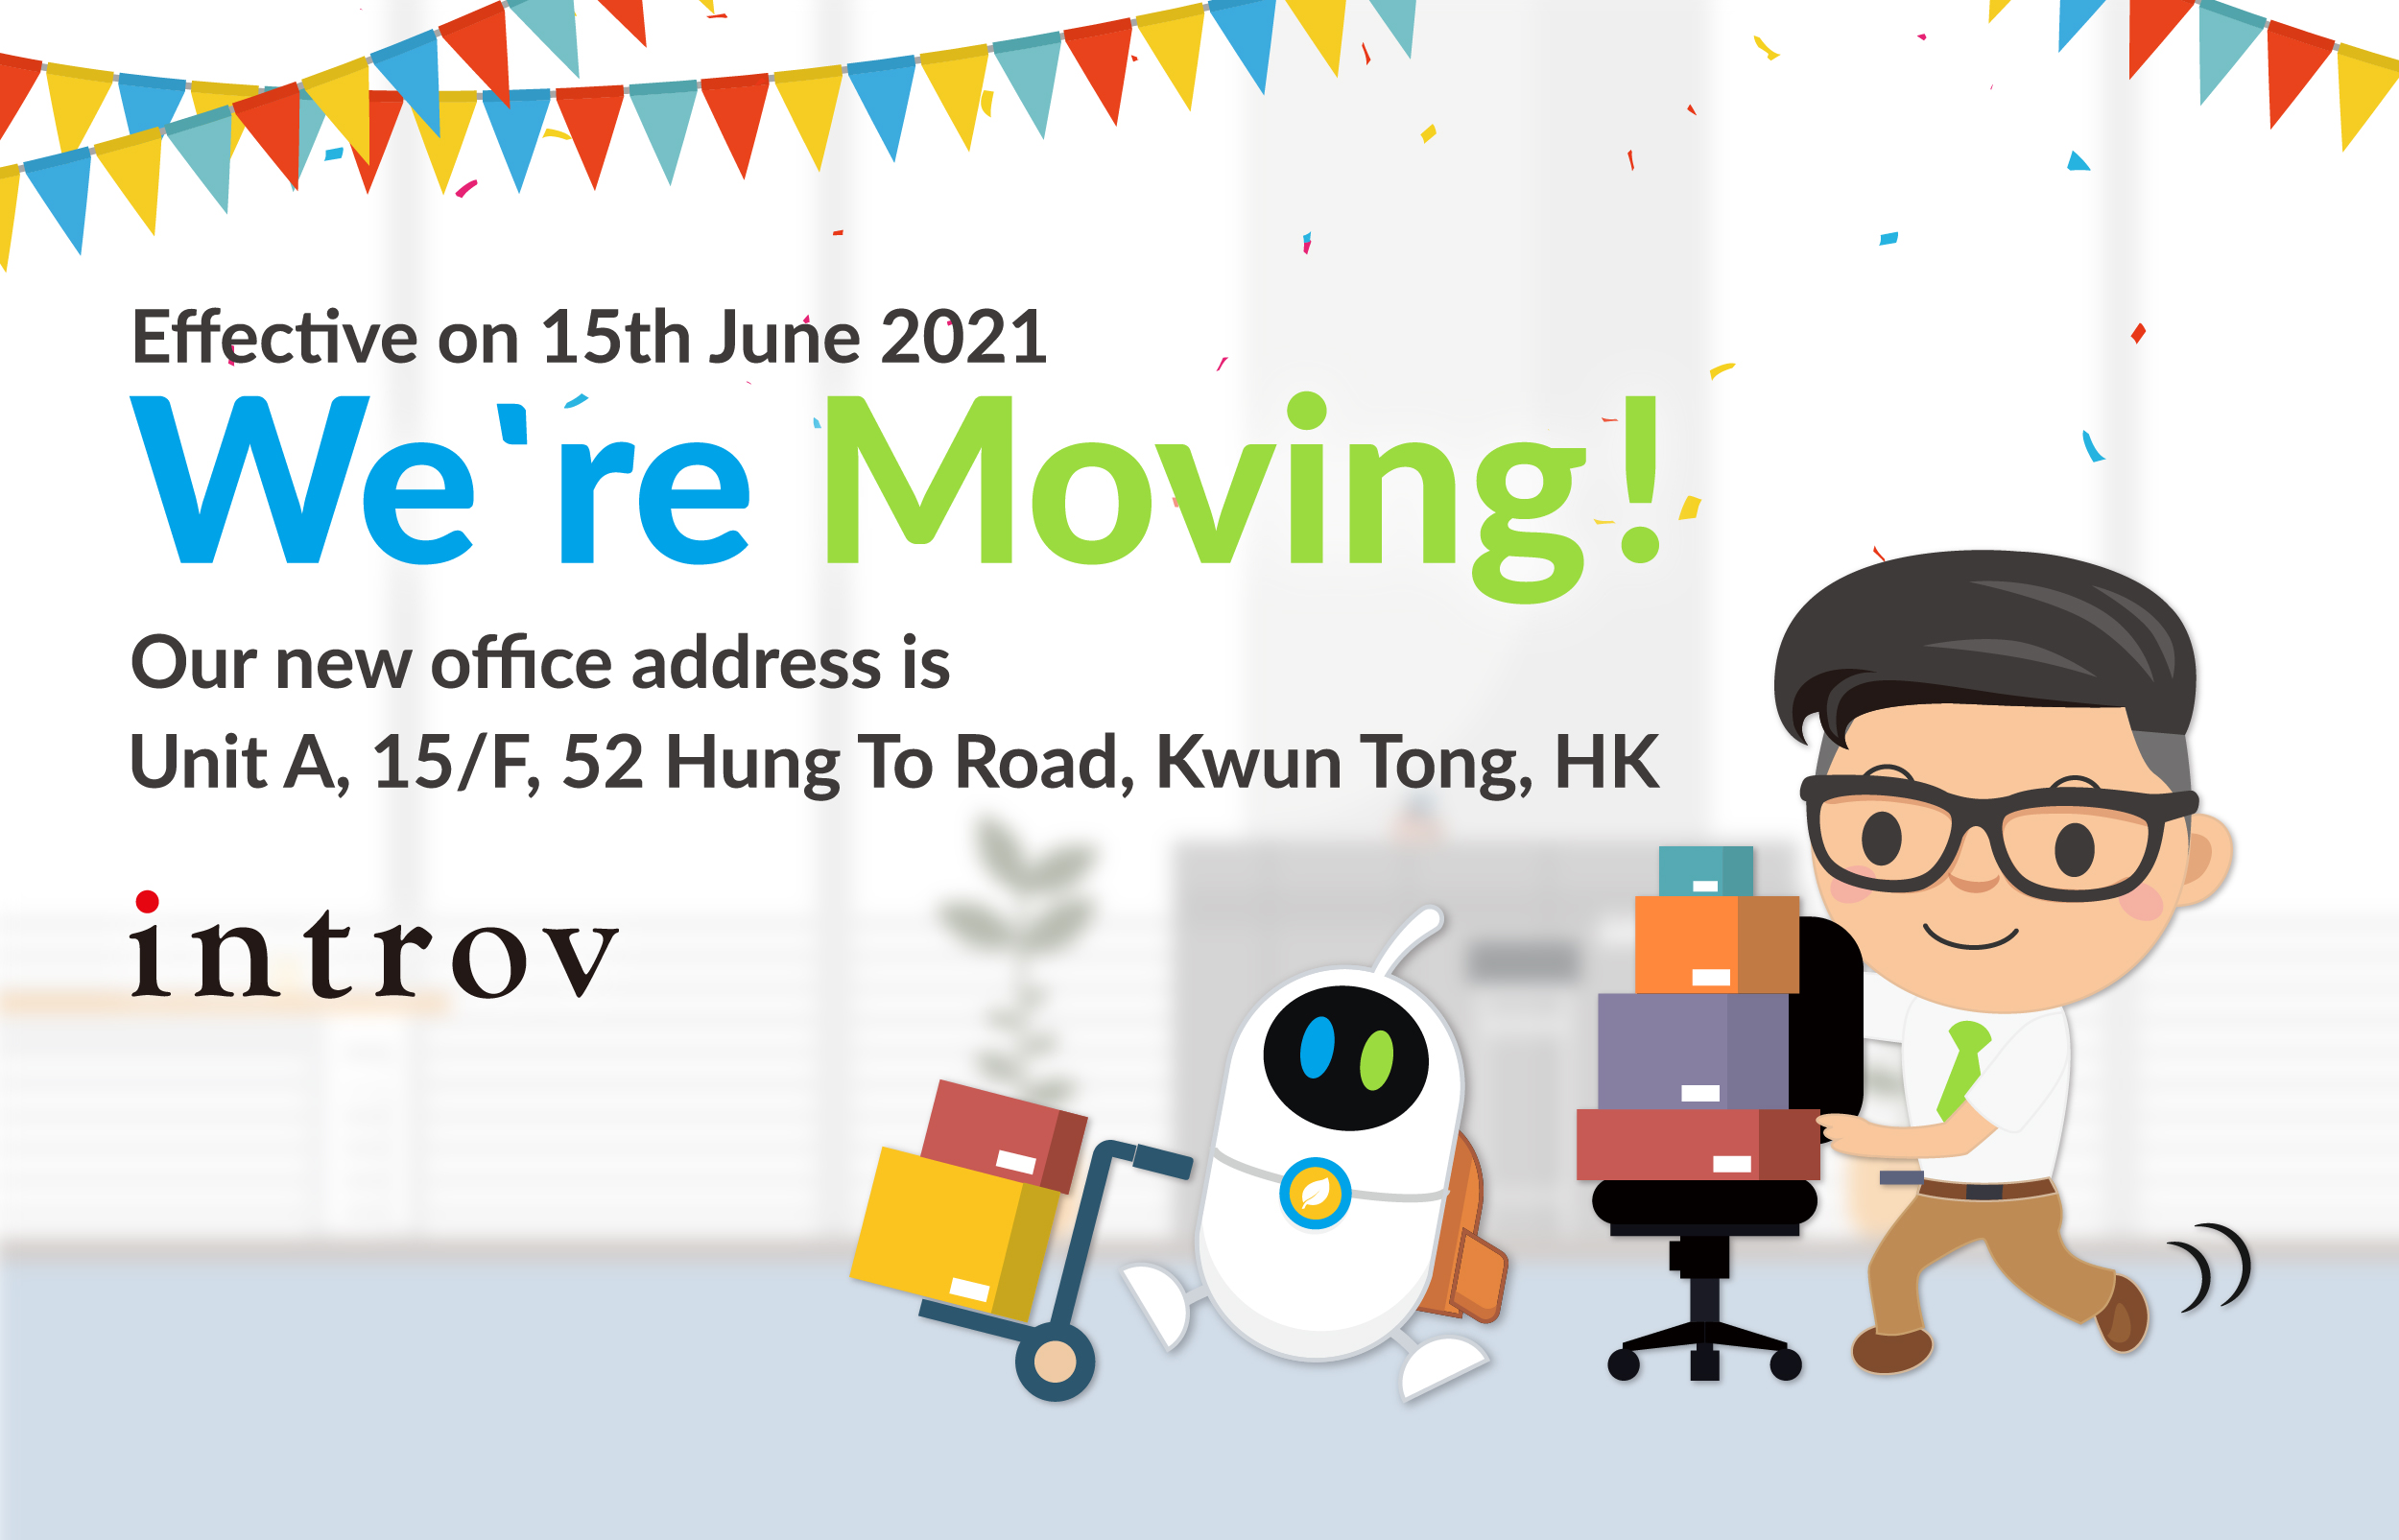 We're Moving to New Office @Hung To Road